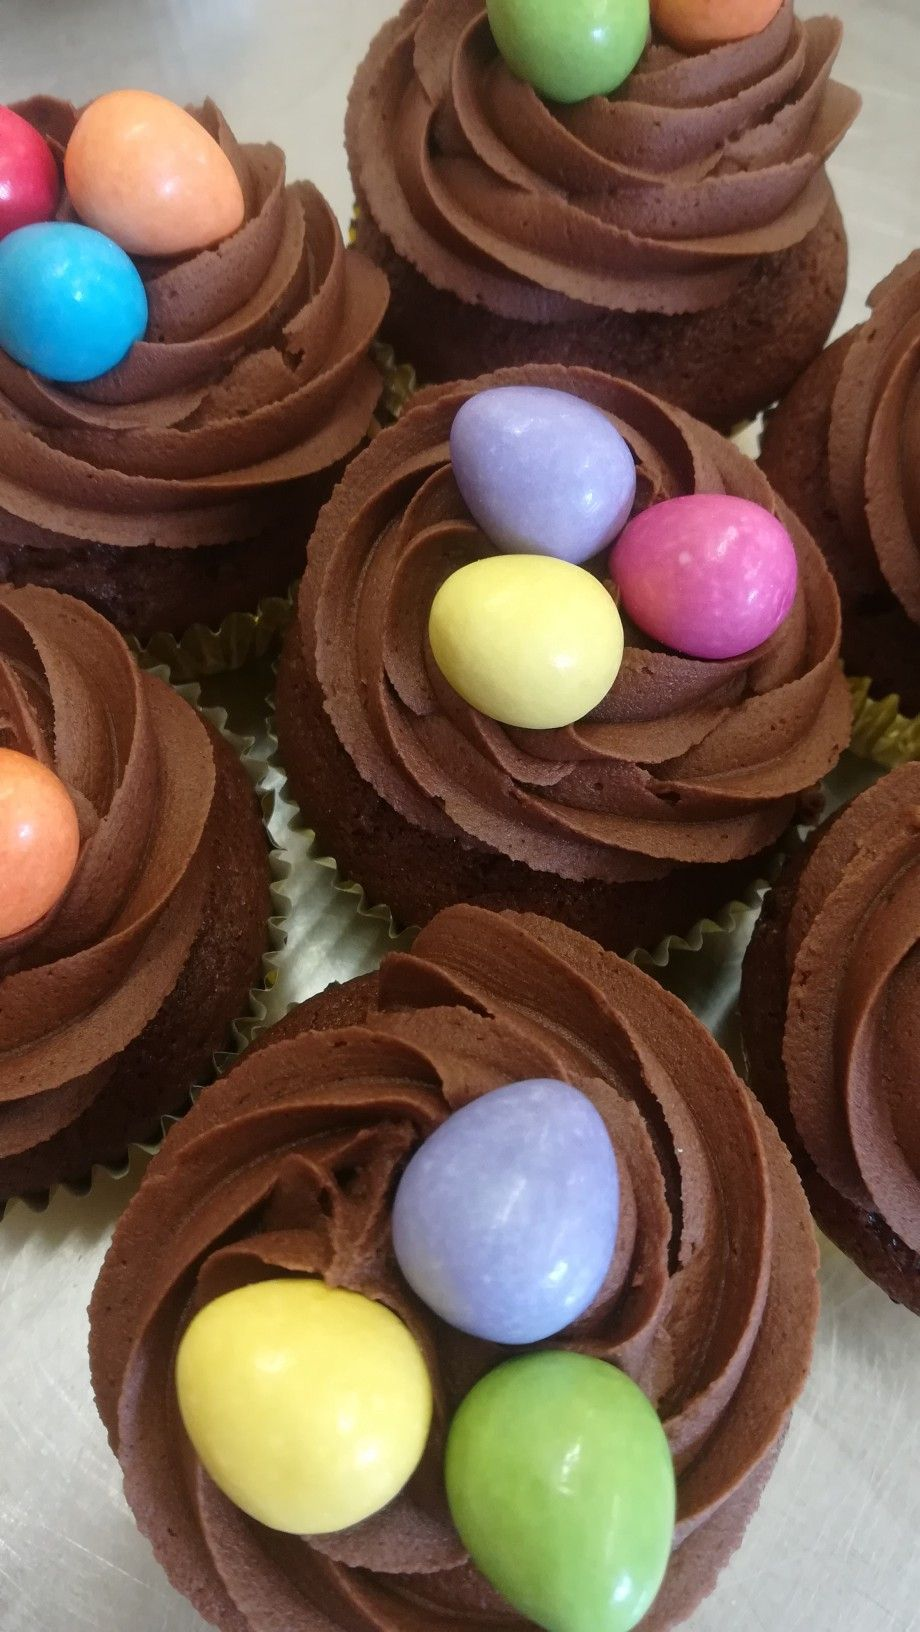 Lawlor S The Bakers Baker By Name Easter Chocolate Easter Cups